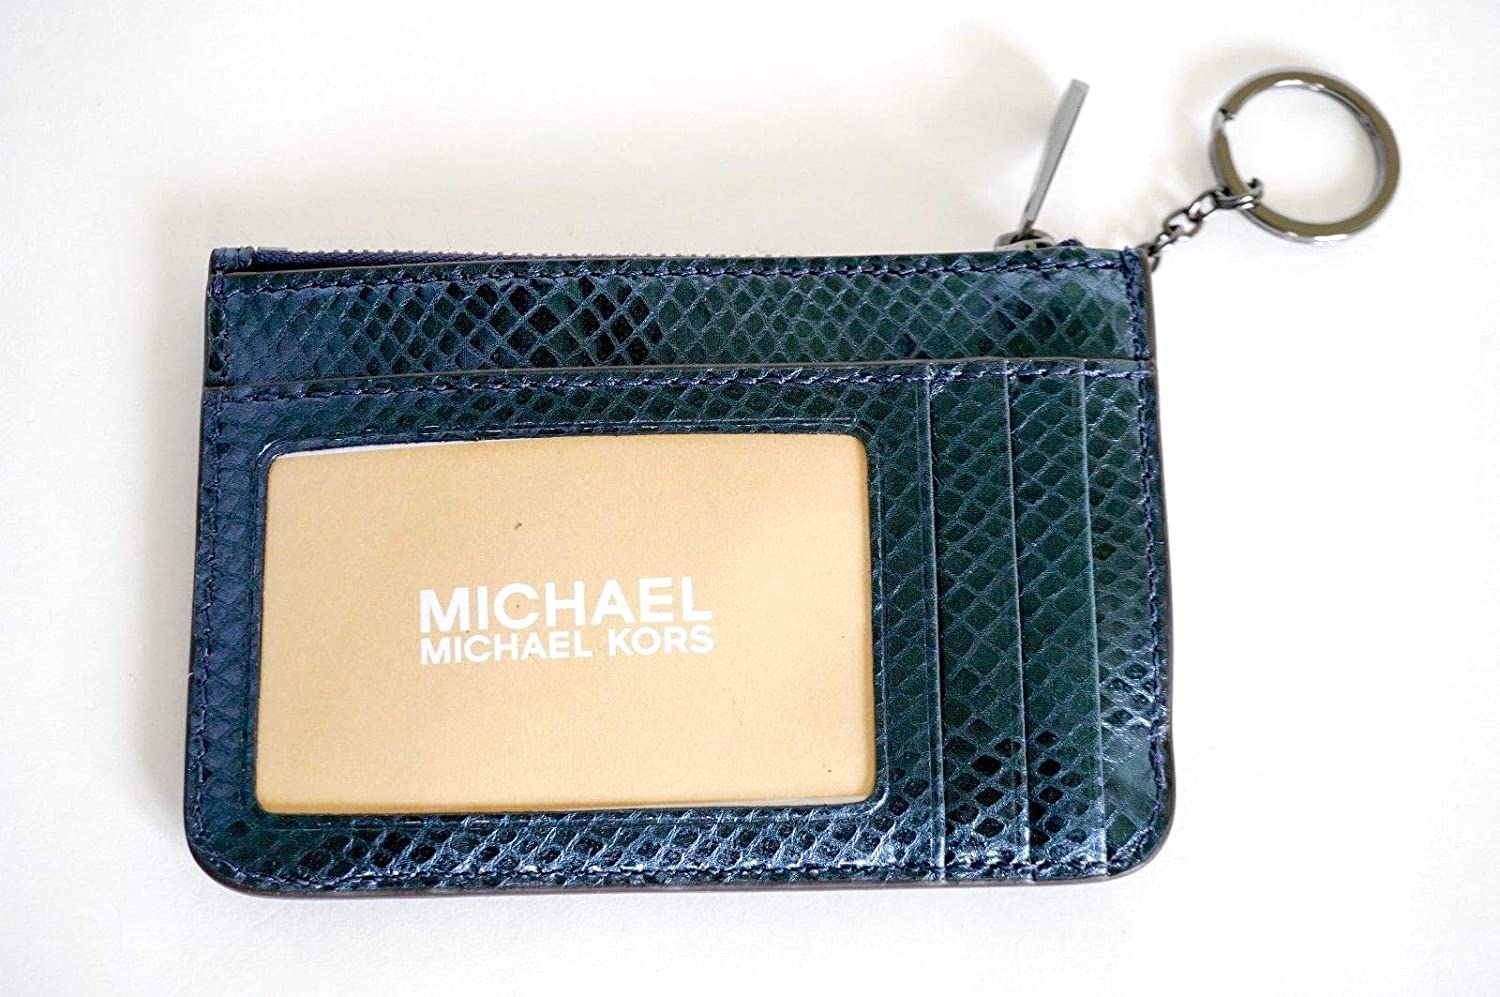 7caaa11545e6 Michael Kors Adele Small Top Zip Coin Pouch ID Card Case Wallet (Deep Teal)  at Amazon Women s Clothing store